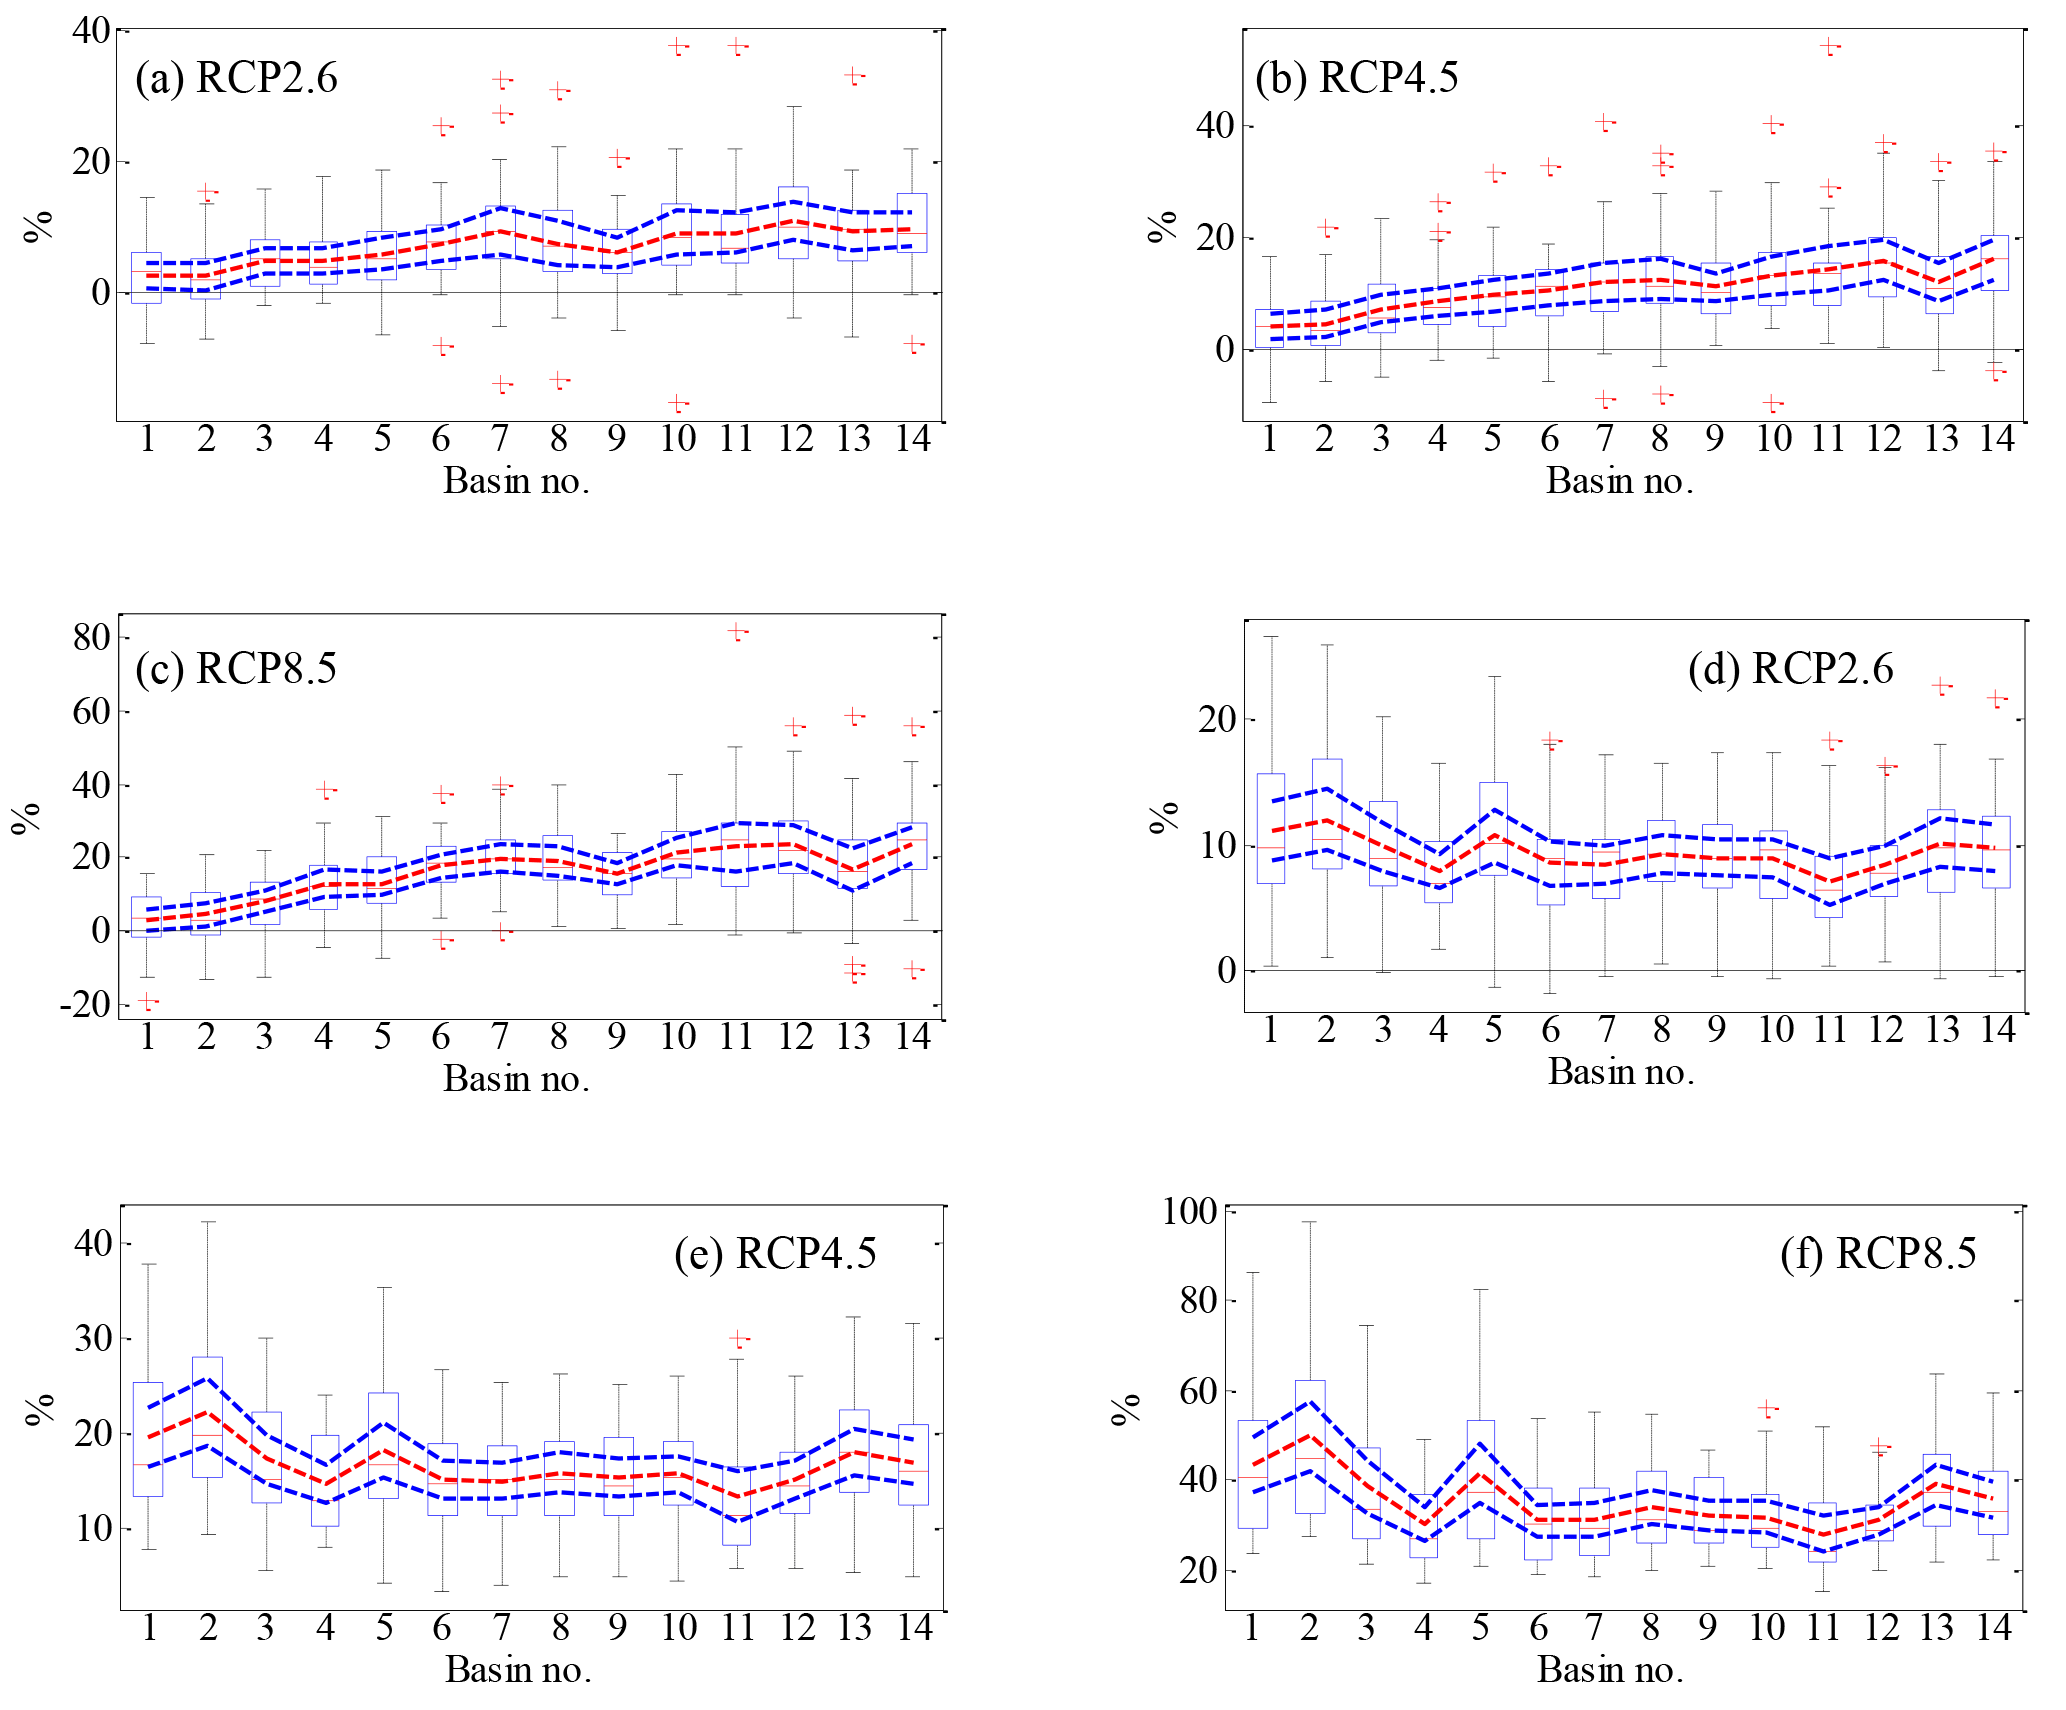 HESS - Responses of runoff to historical and future climate